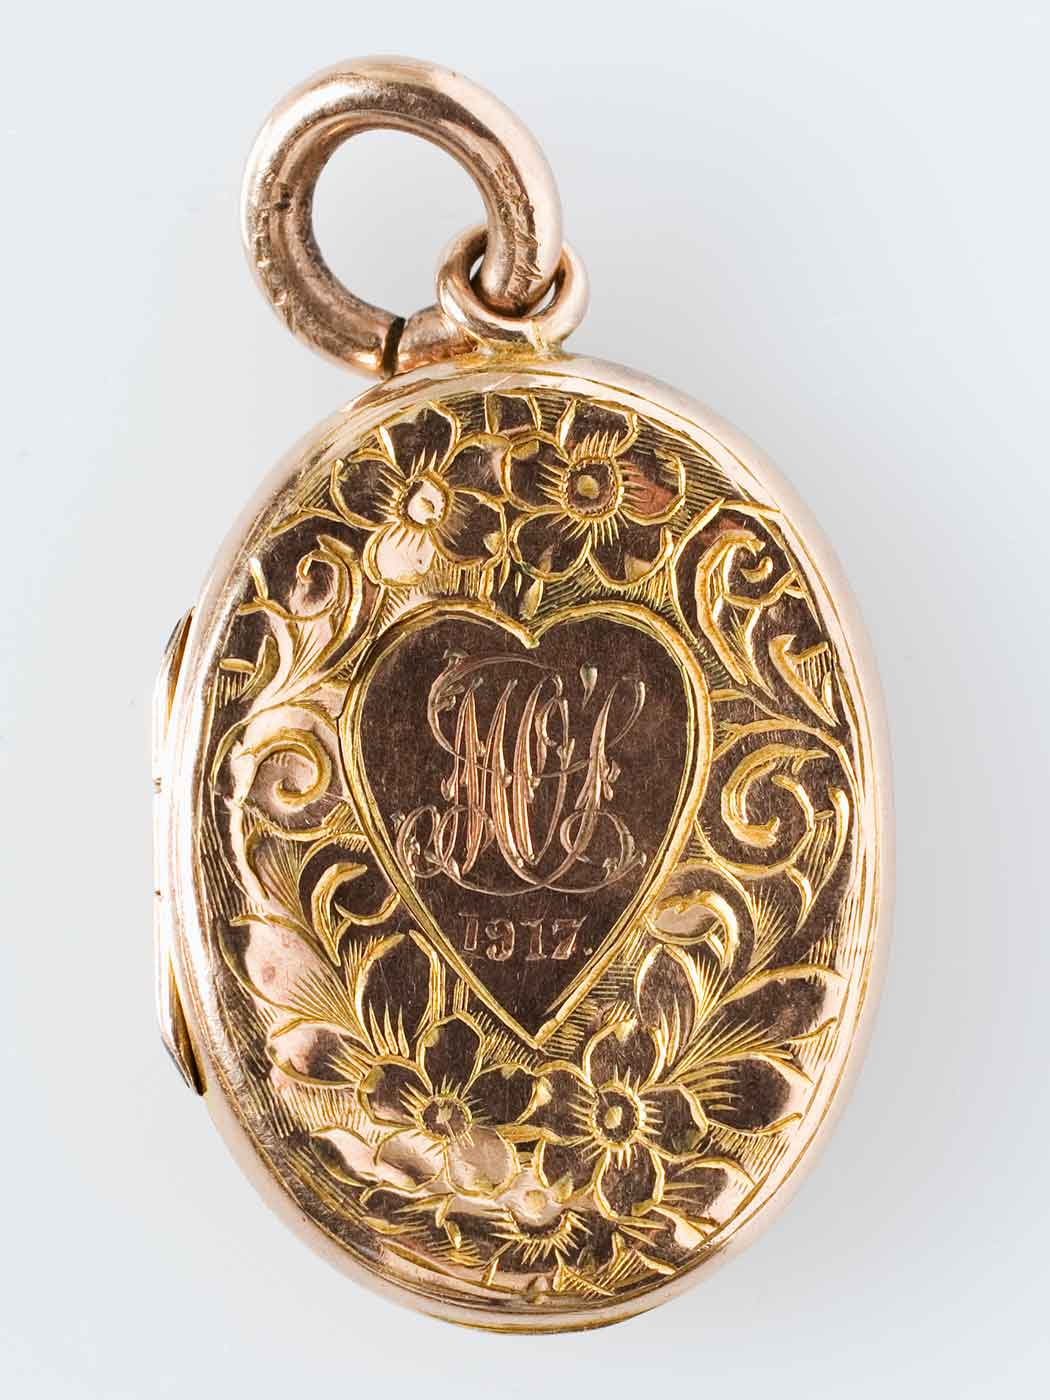 Golden locket with ornate design and the date 1917 engraved. - click to view larger image